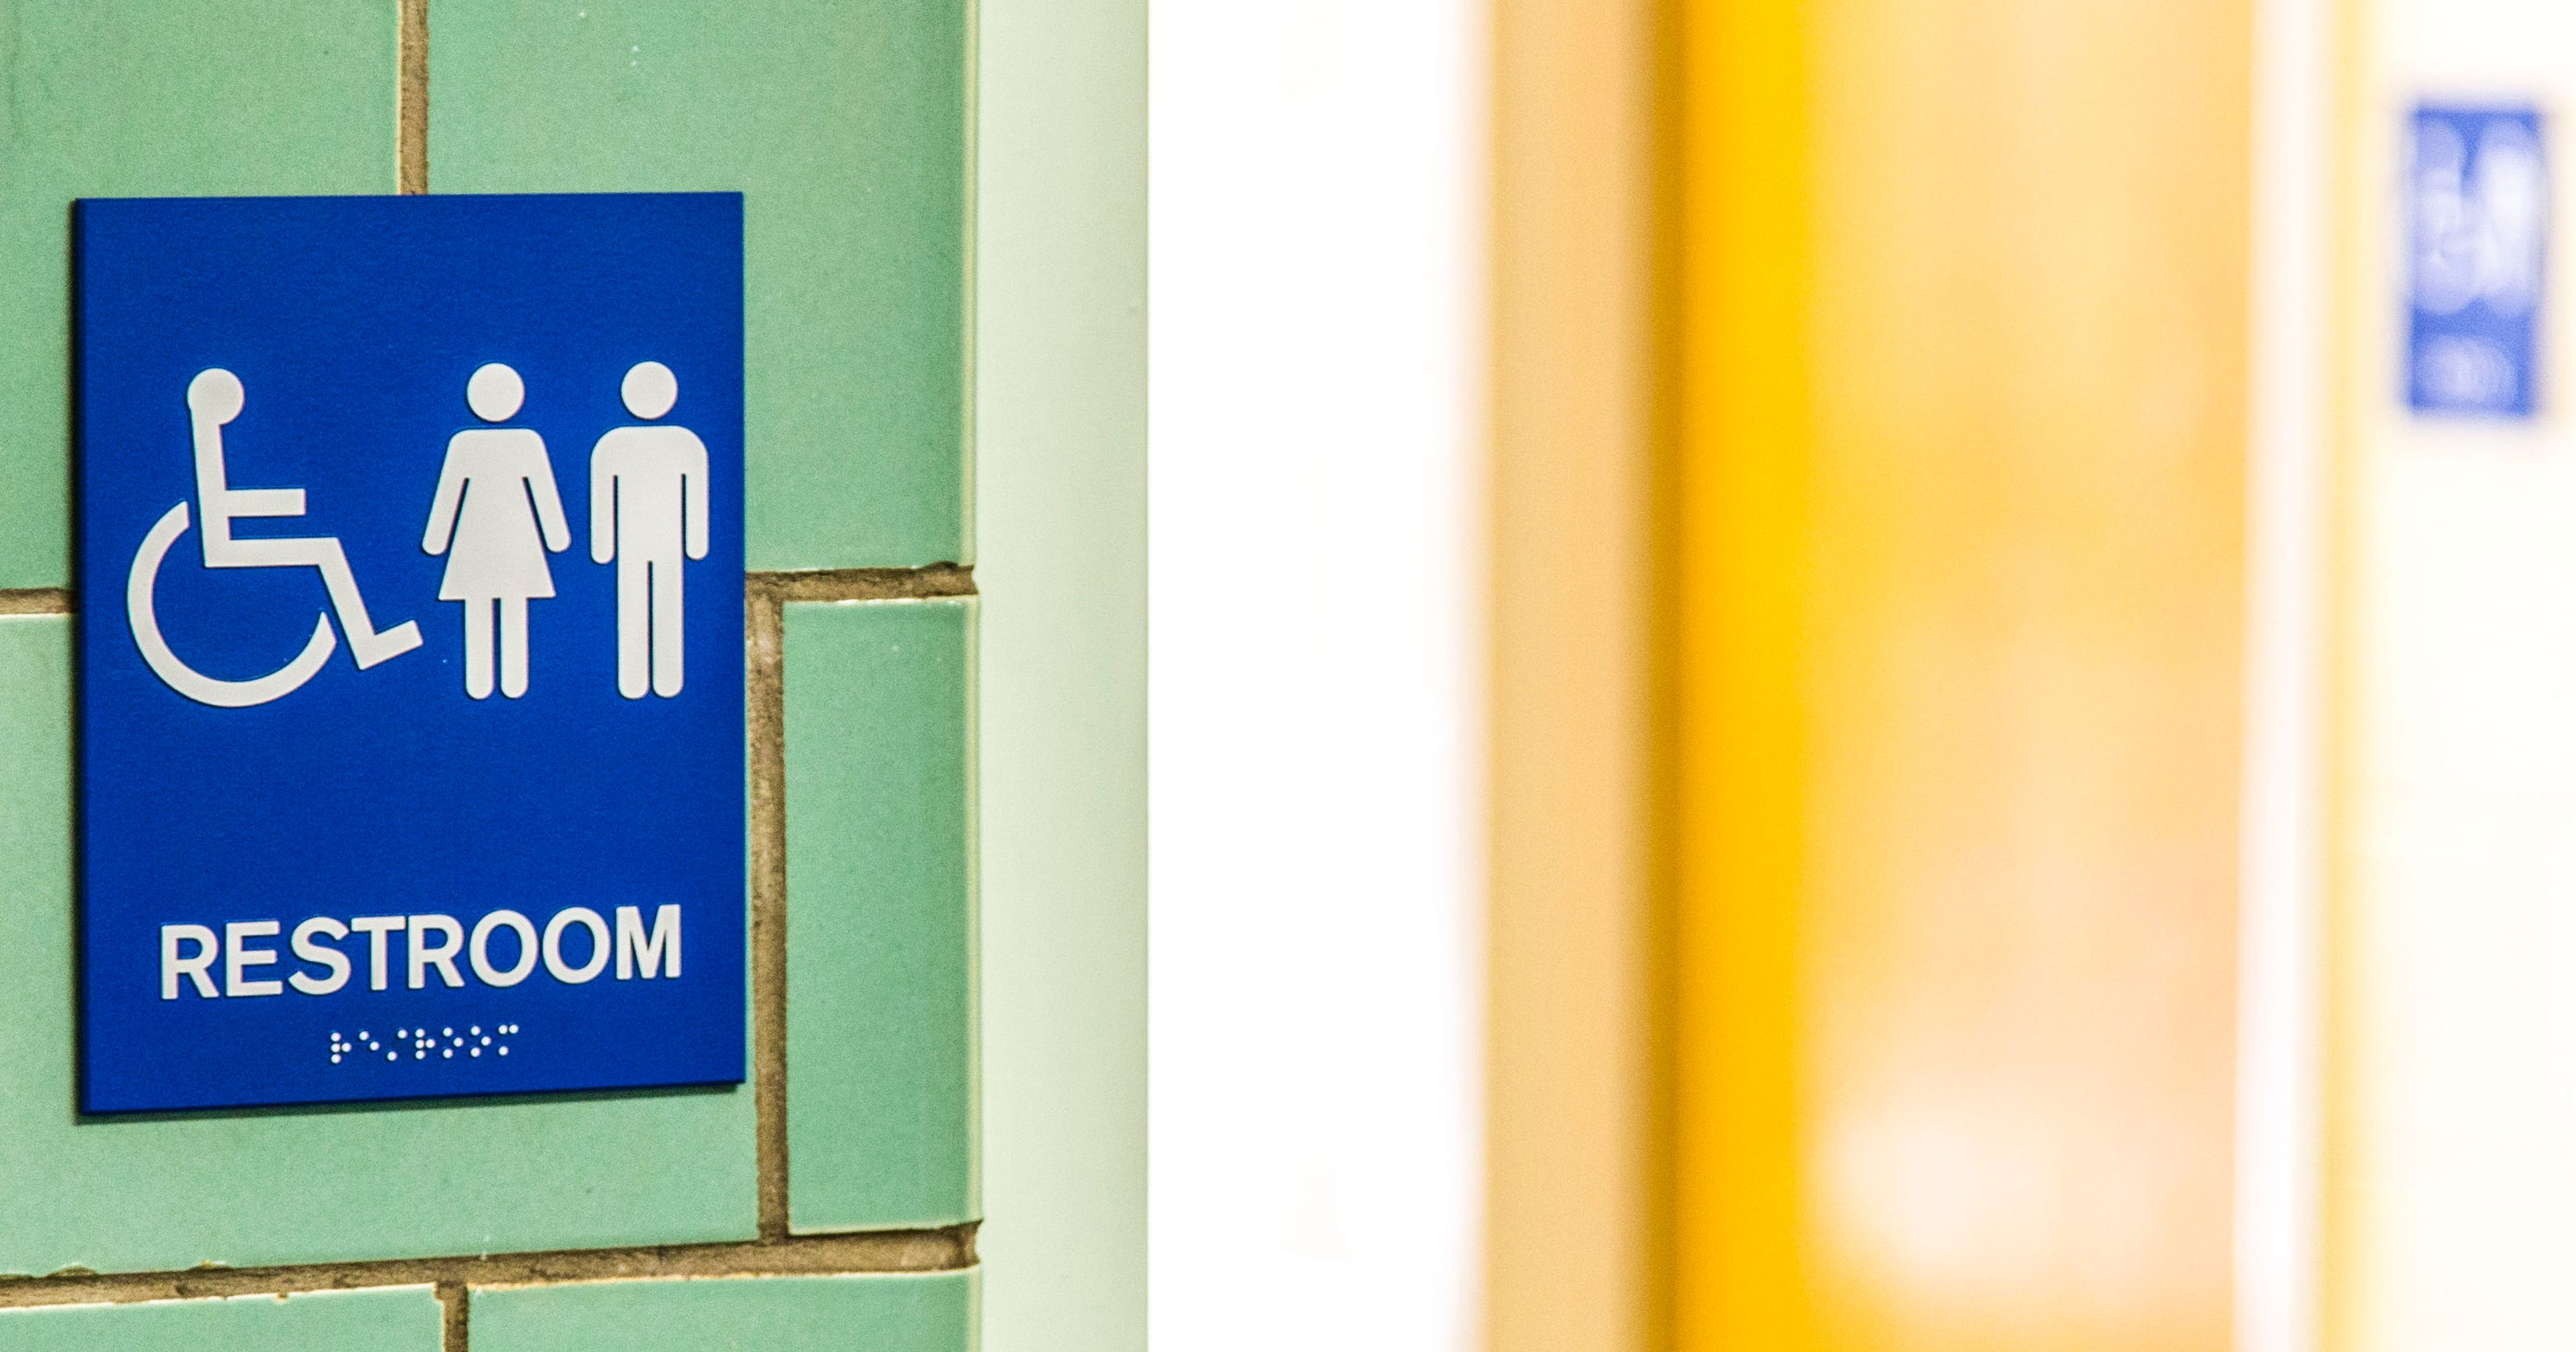 Us Issues Directive On Transgender Bathroom Use In Public